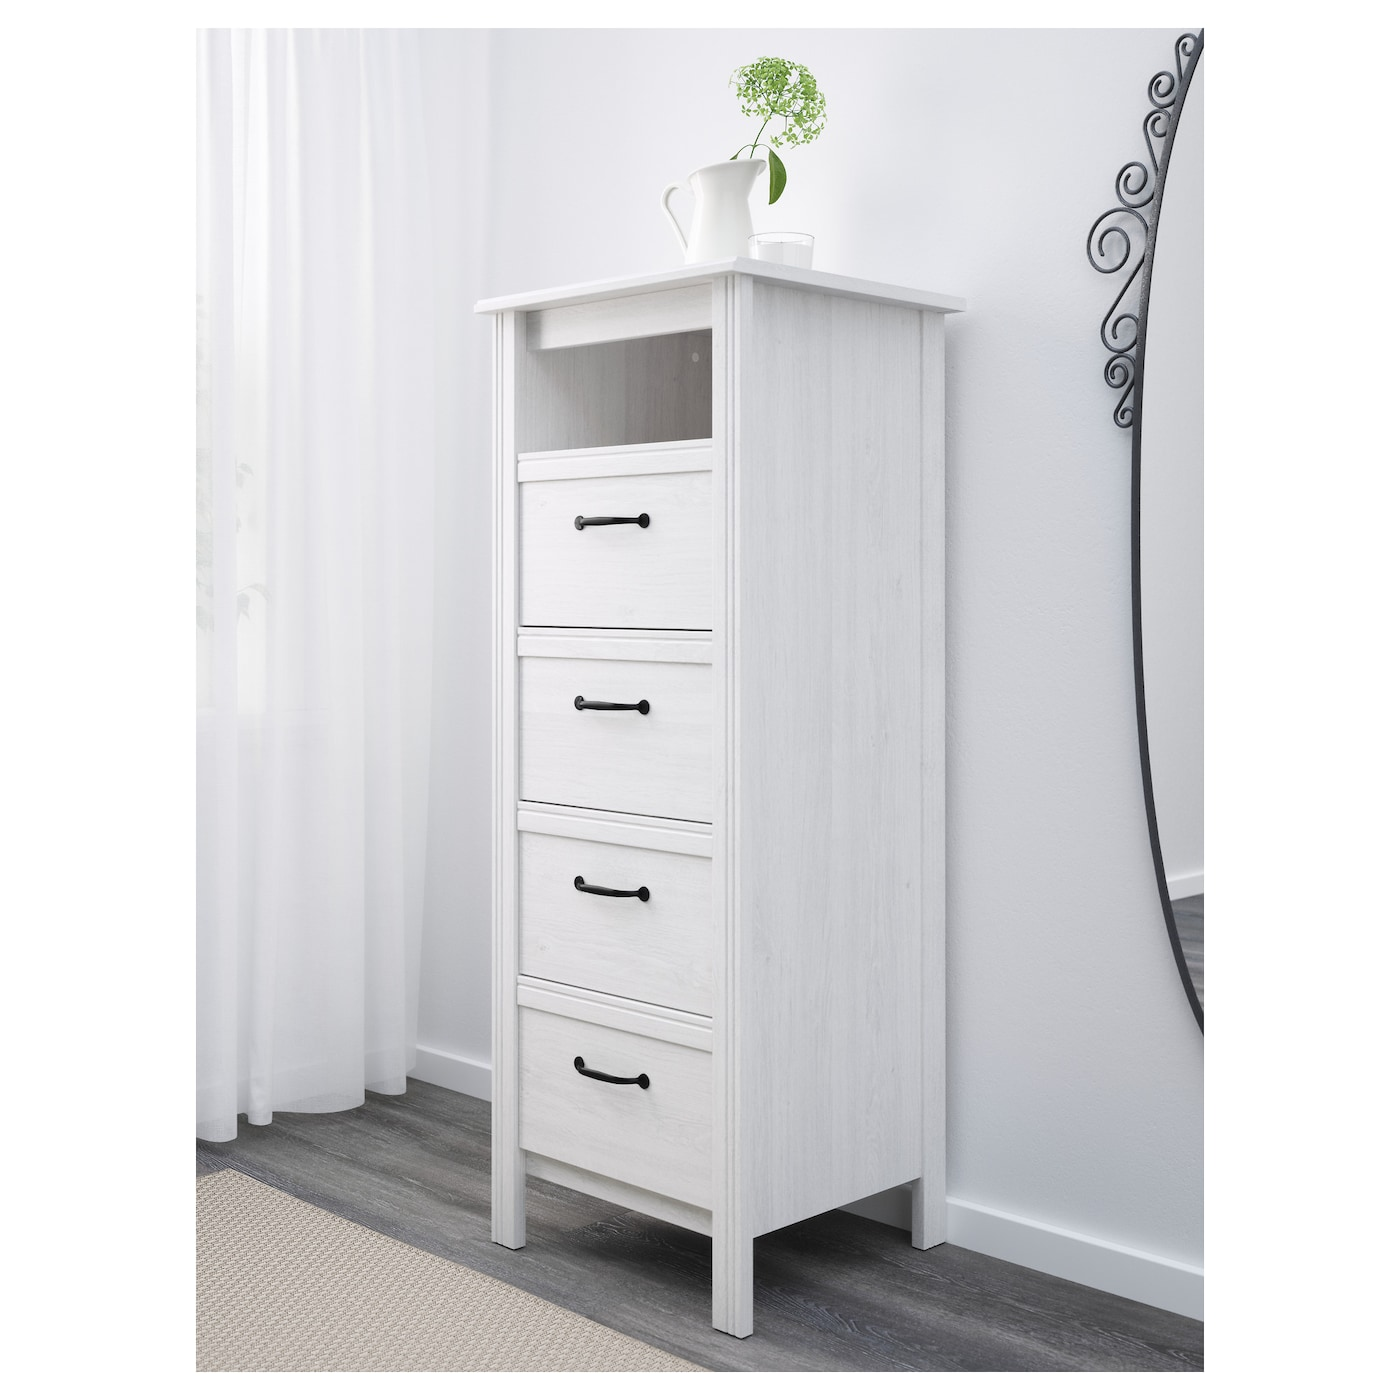 brusali chest of 4 drawers white 51x134 cm ikea. Black Bedroom Furniture Sets. Home Design Ideas